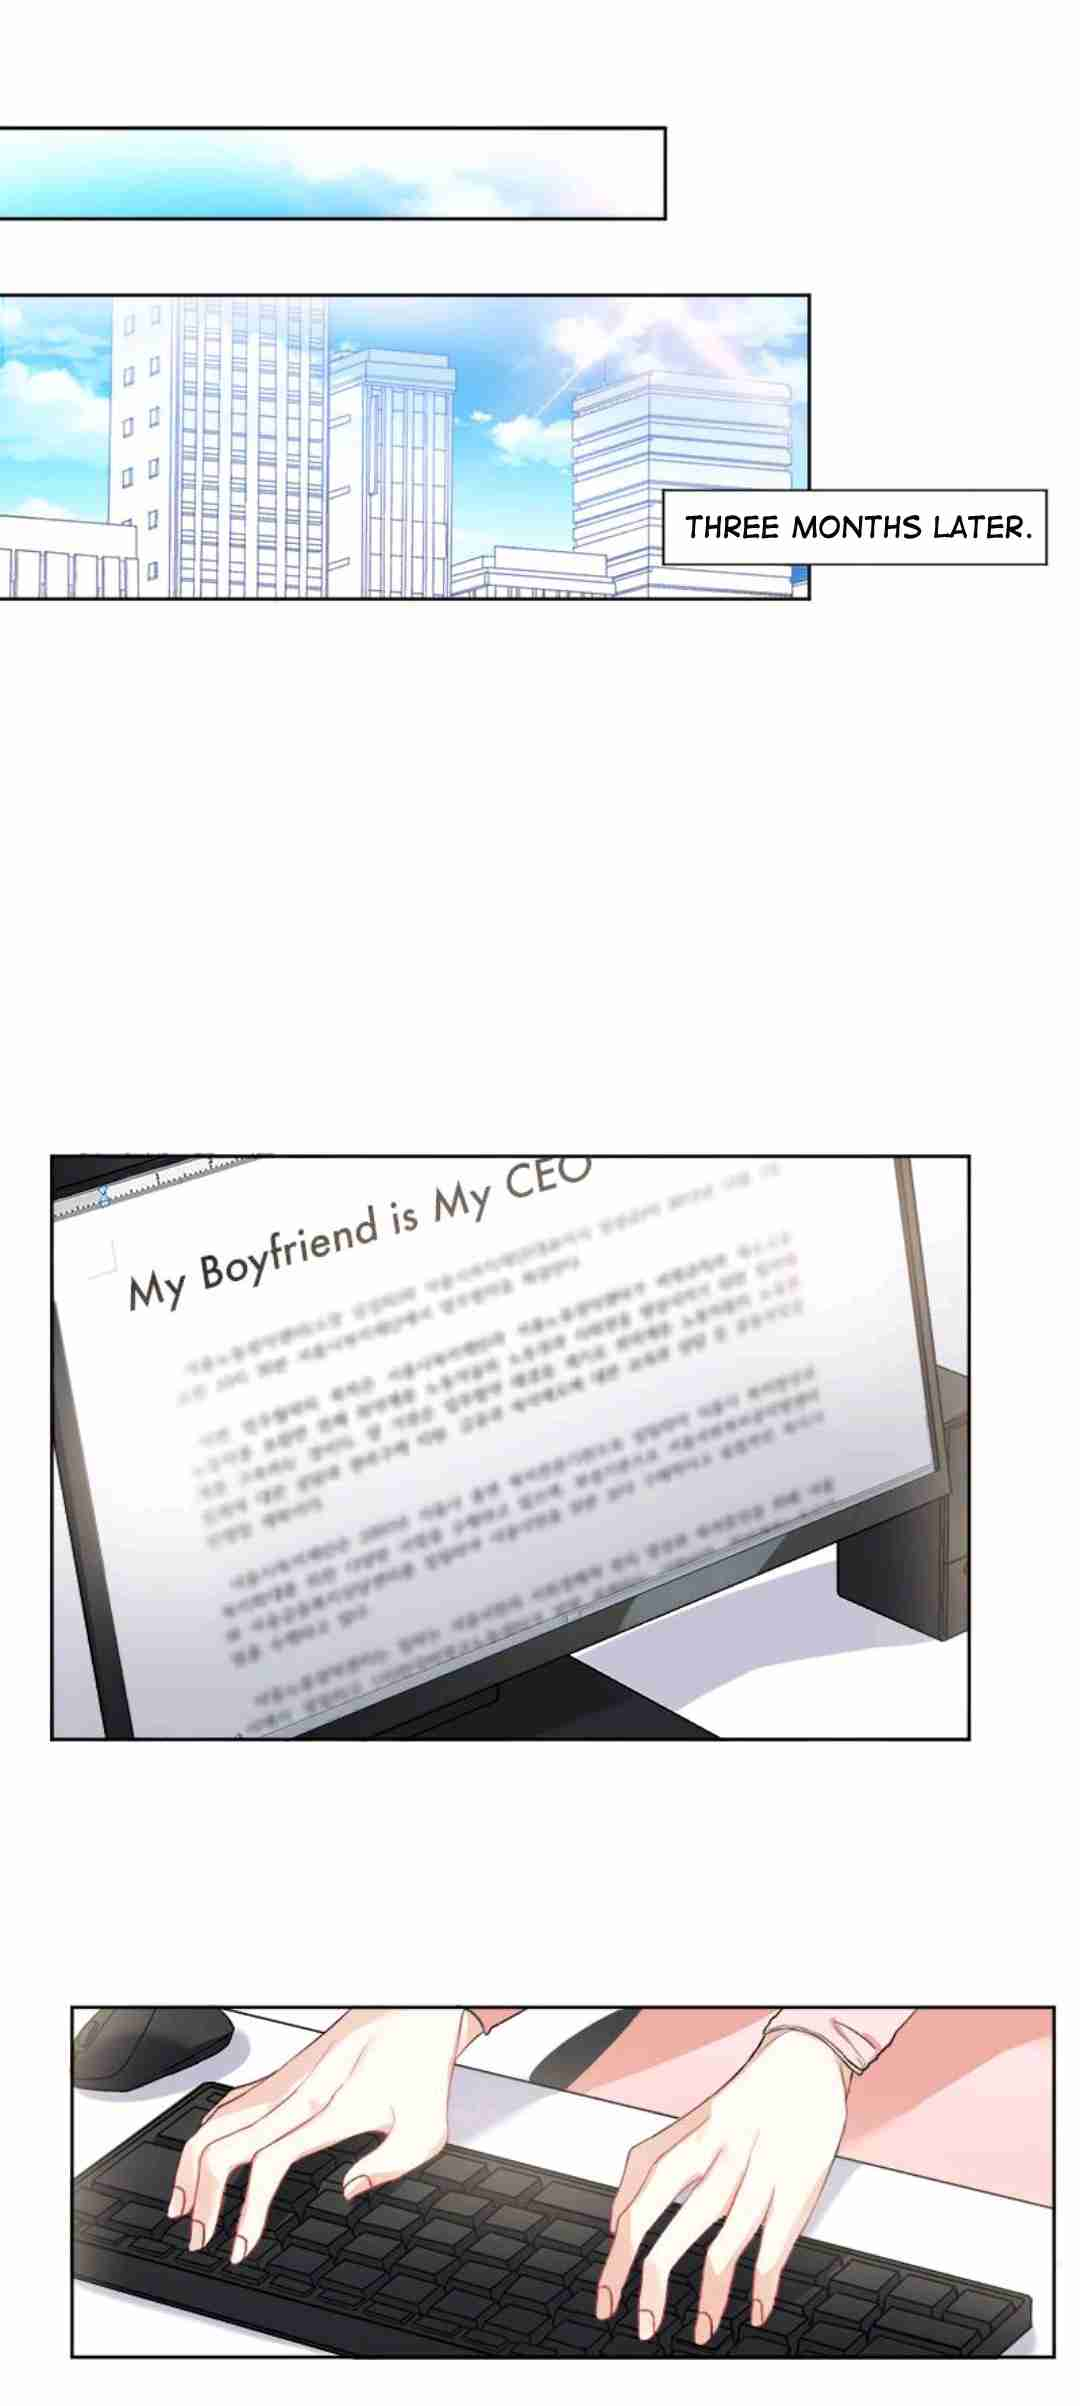 CEO's Top Secret Ch. 2